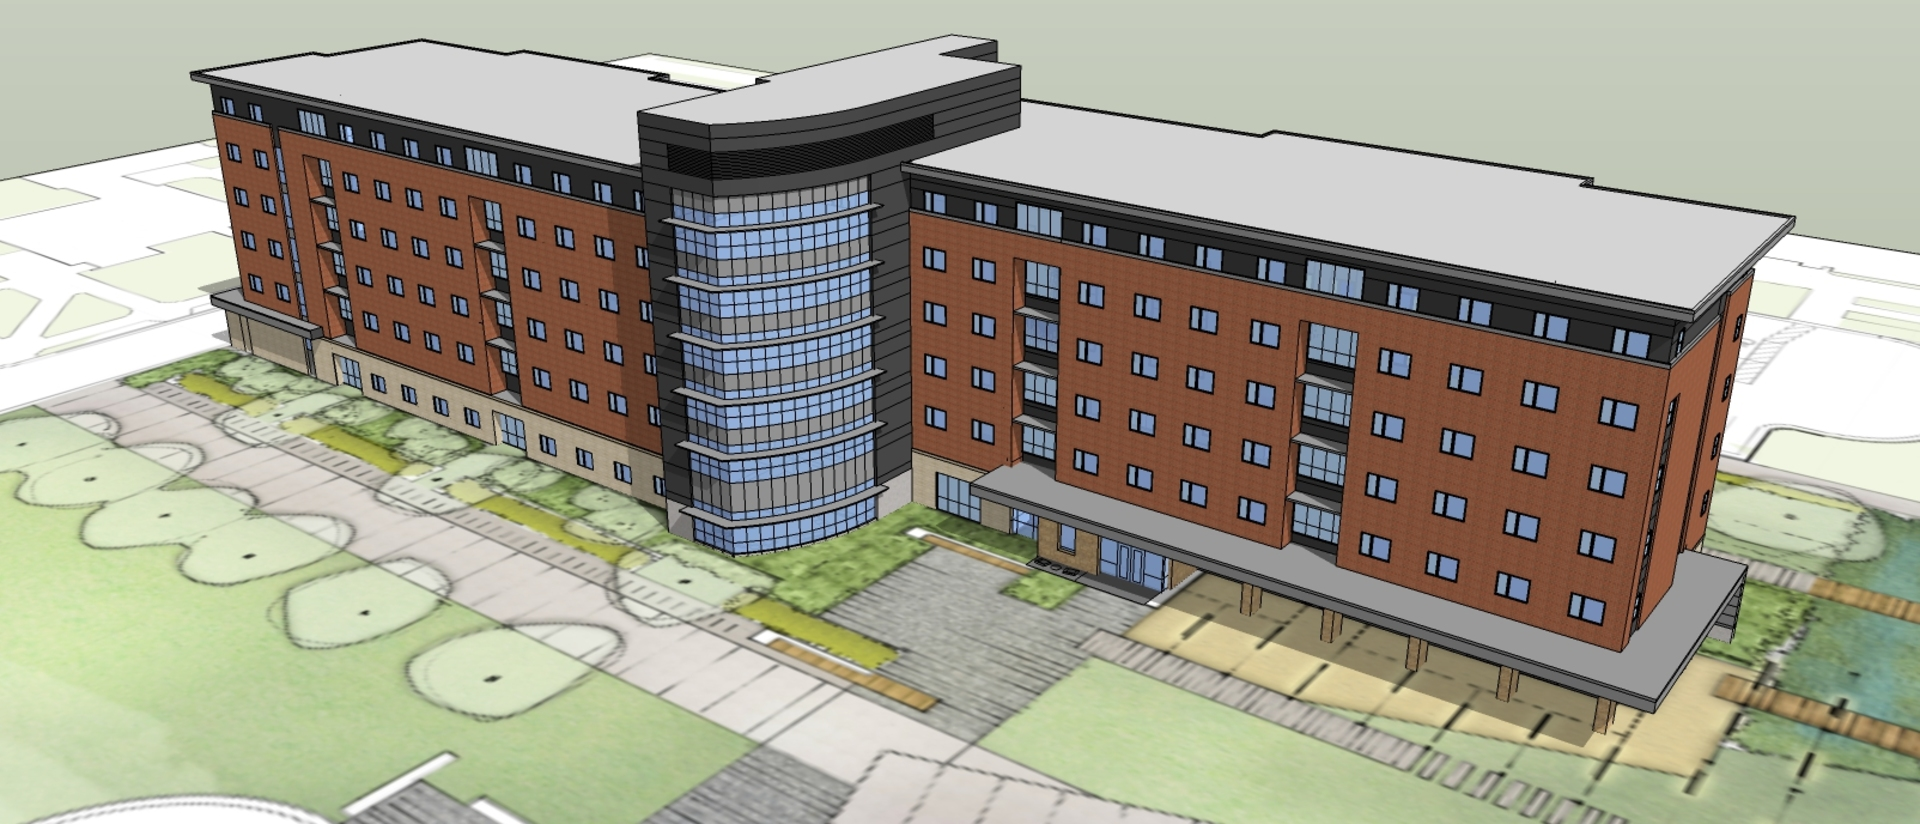 New UW-Eau Claire residence hall concept drawing